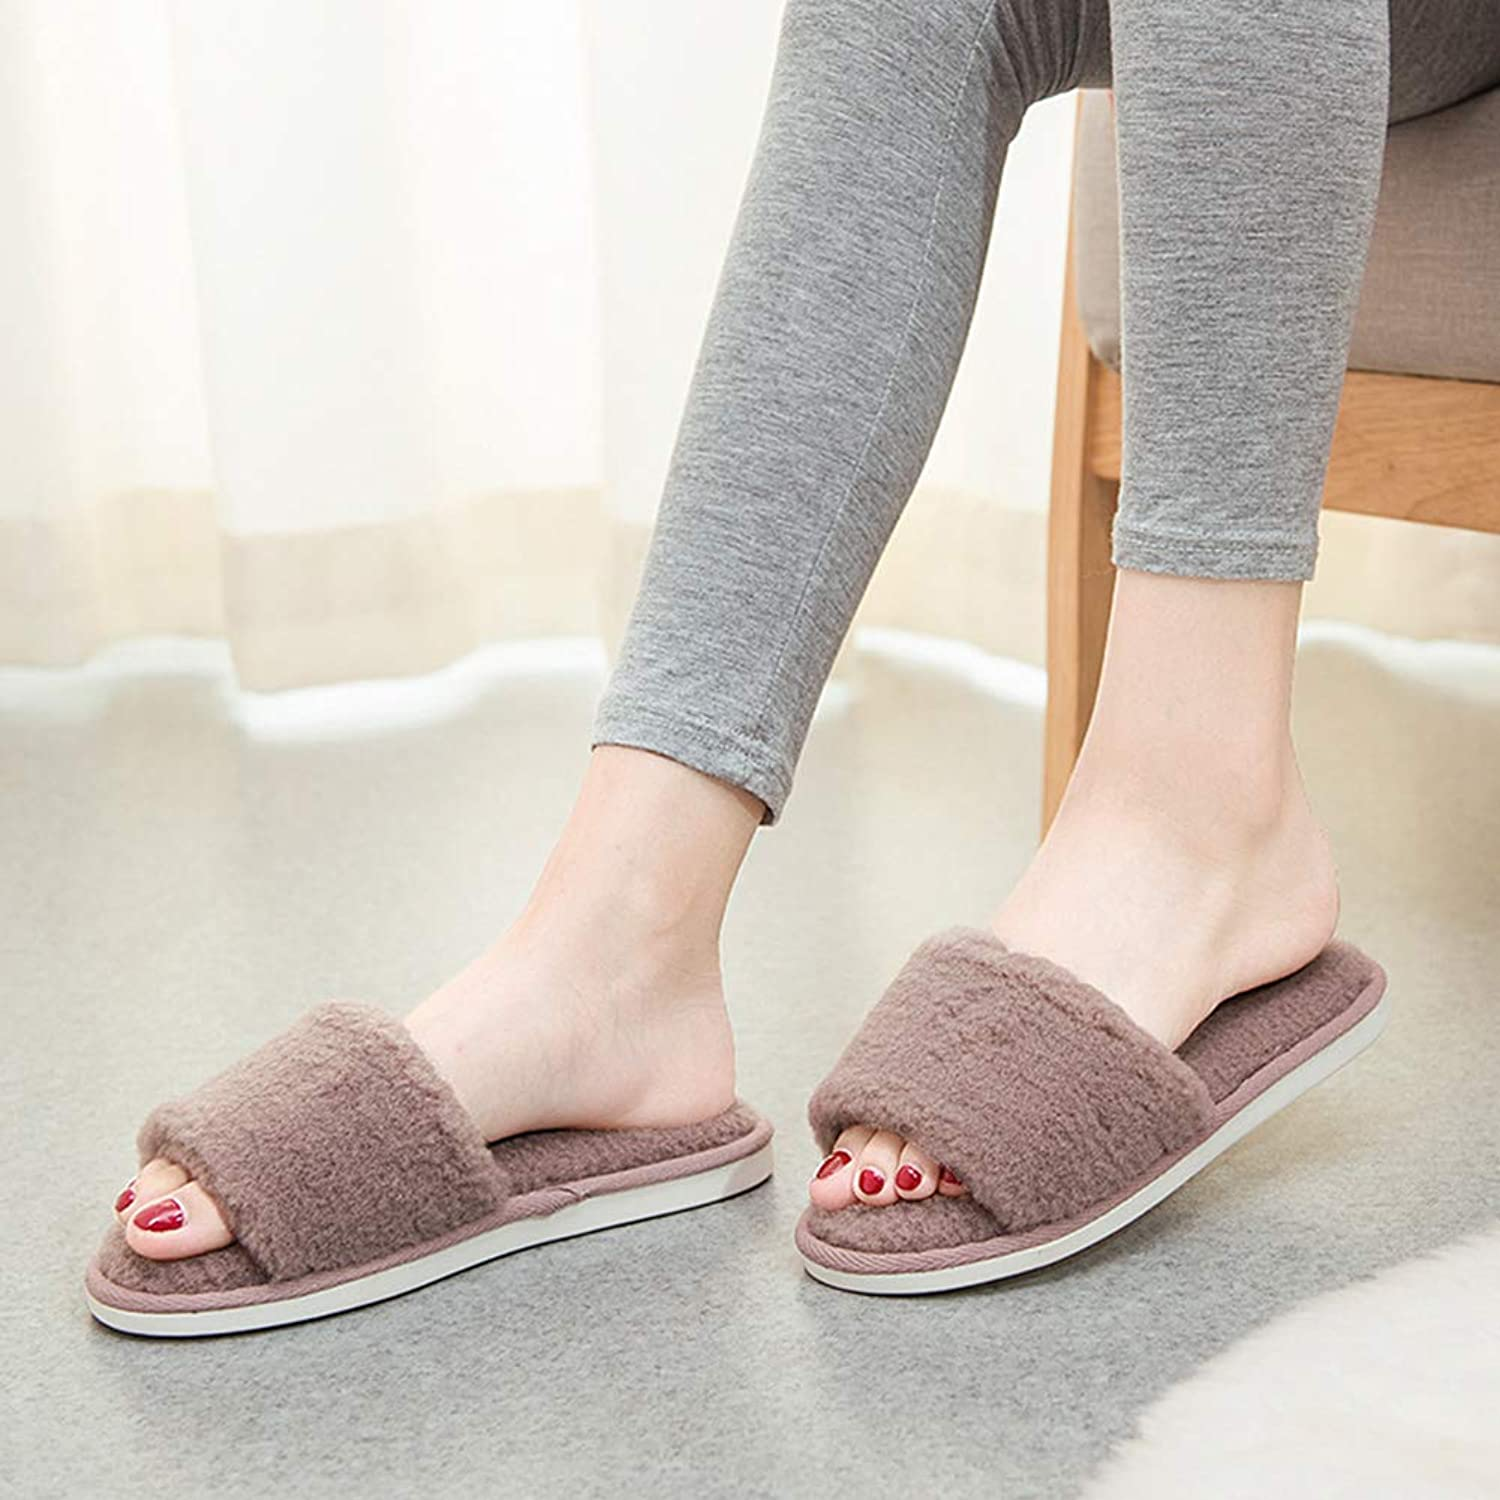 Flip Flop Non-Slip Keep Warm Cotton Slippers Autumn and Winter Fleece Slippers Indoor Non-Slip Warm Cotton Slippers Winter Soft and Comfortable Western Style (color   D, Size   35-37yards)